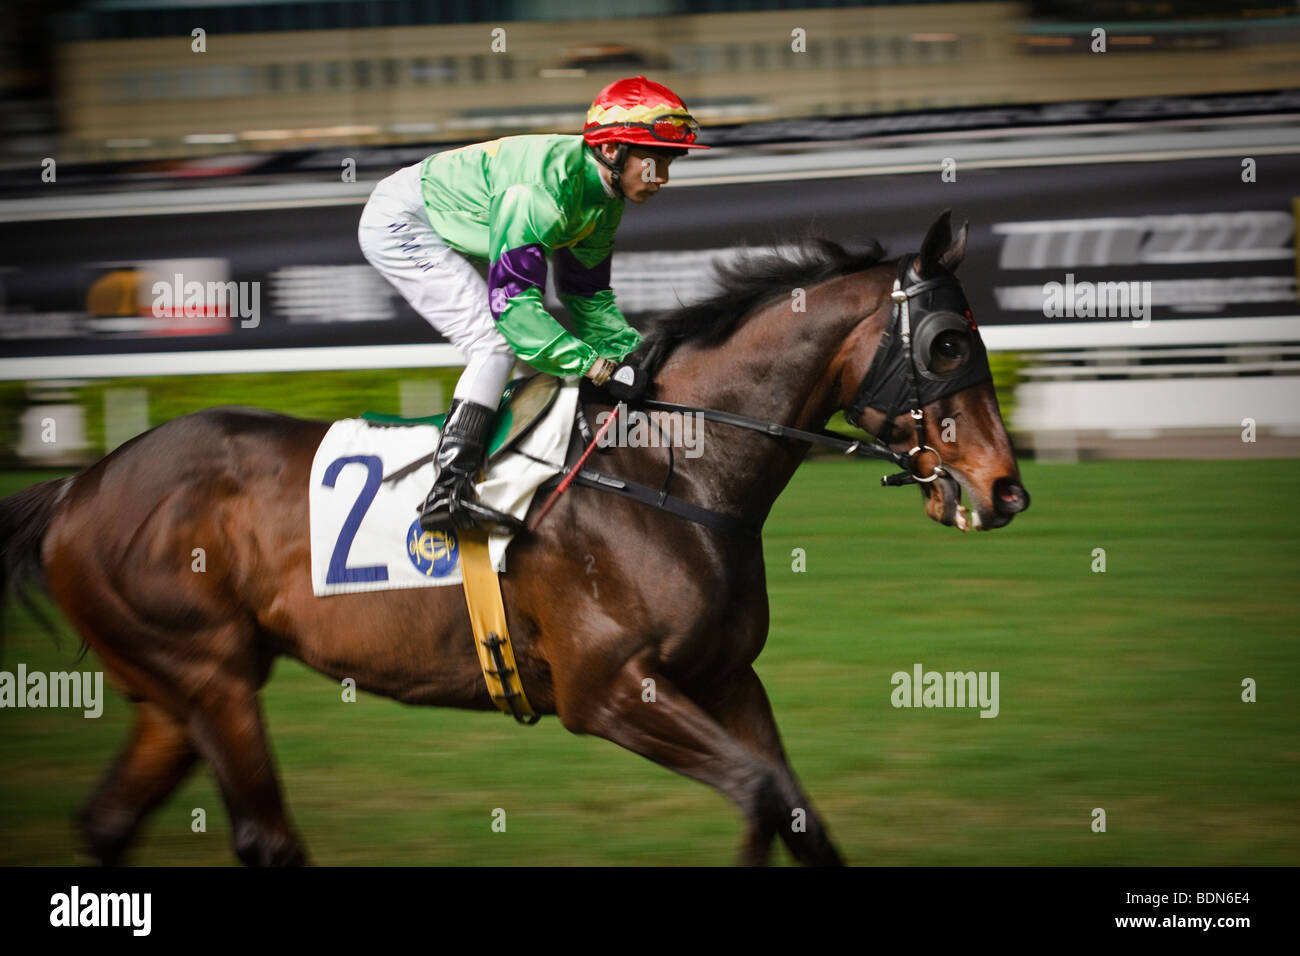 A jockey and his mount ride out to the start at a night horse racing event at the Happy Valley race course in Hong - Stock Image